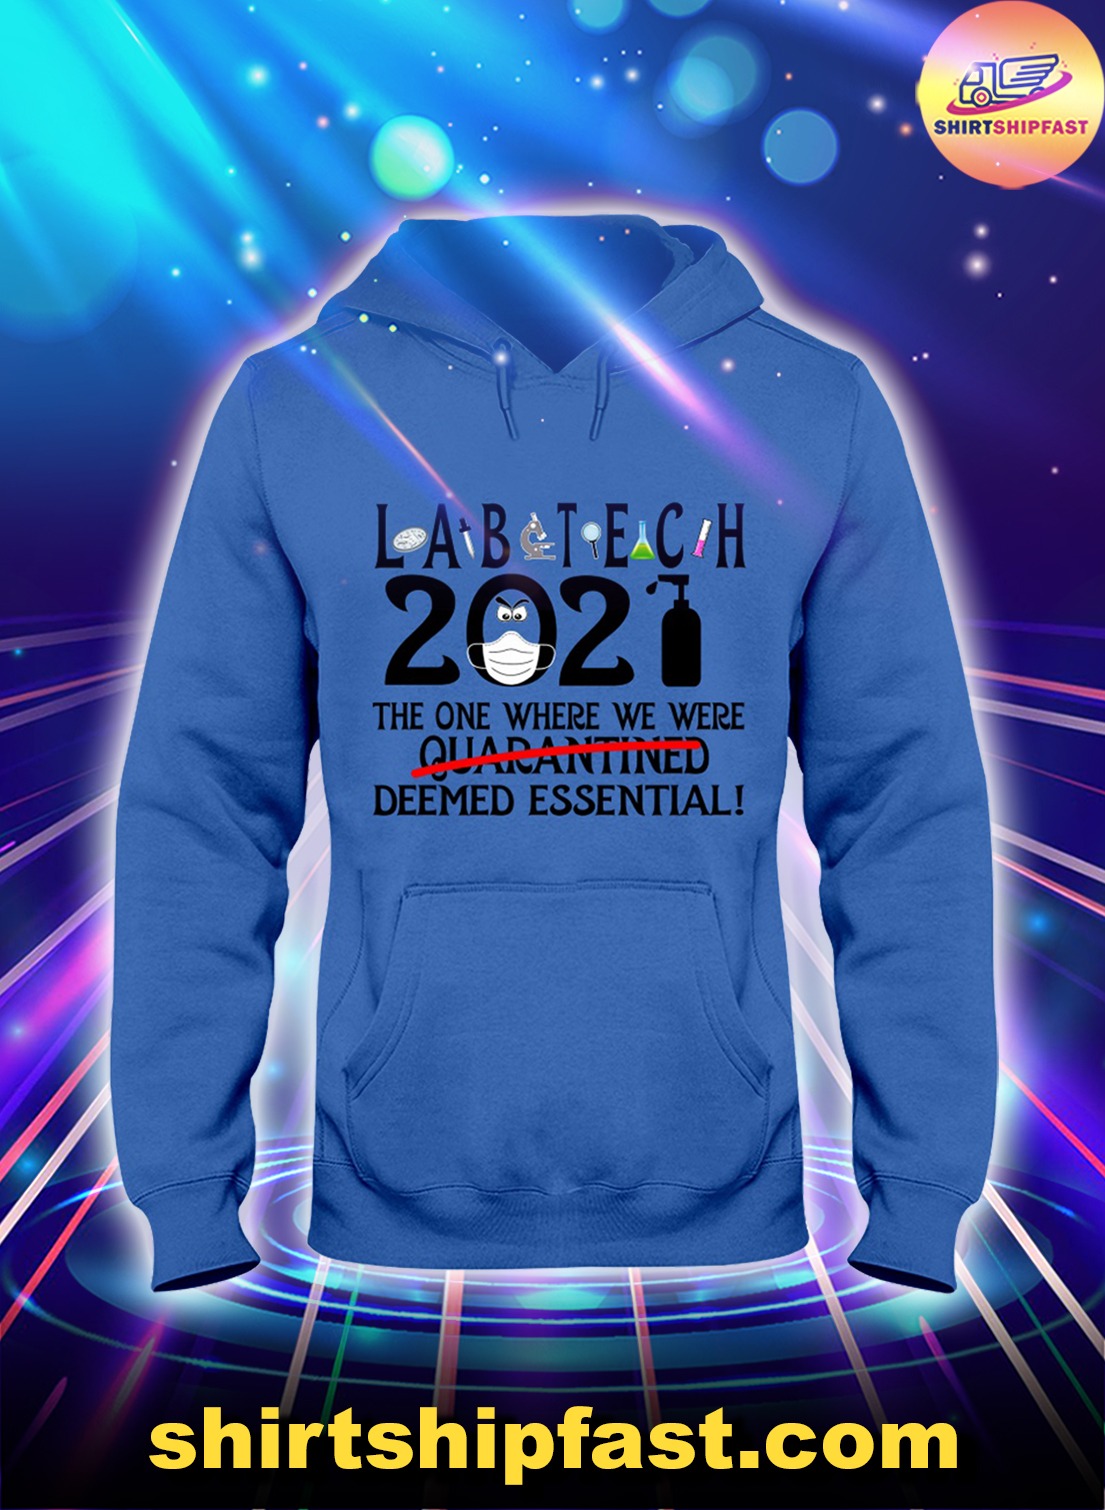 Labtech 2021 the one where we were deemed essential hoodie